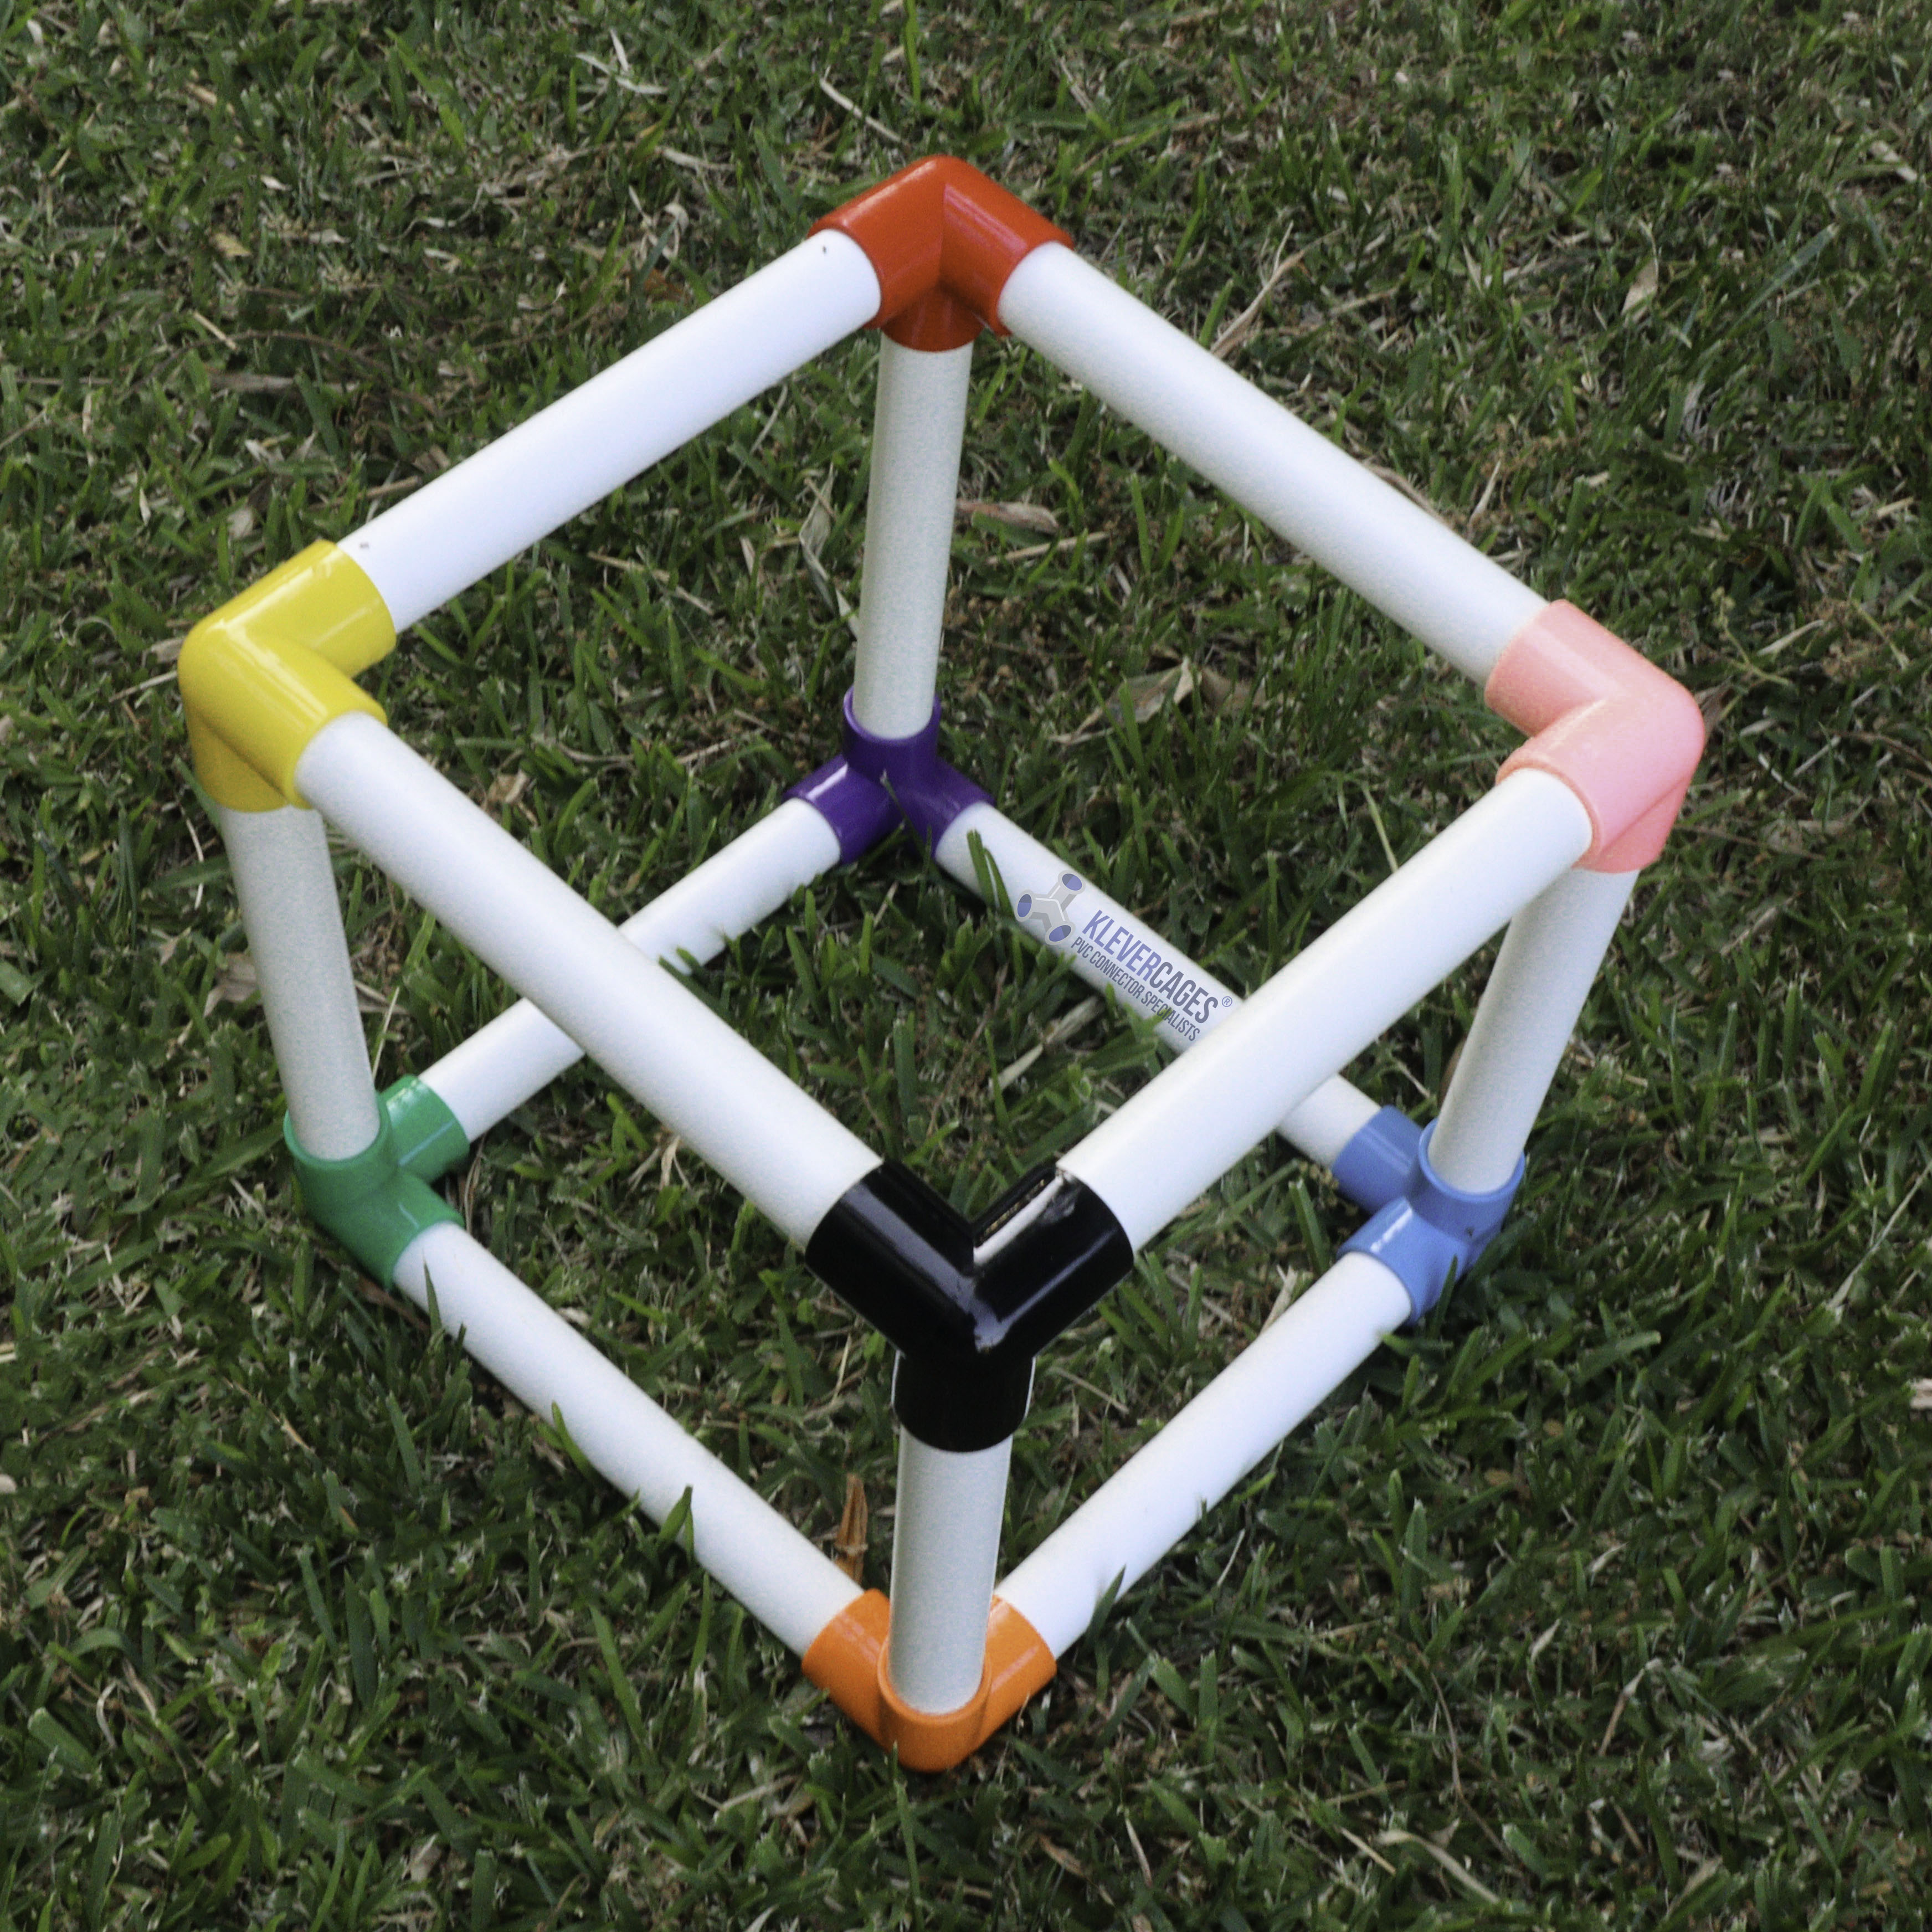 20mm PVC pipe cube with Vinyl connectors in blue, green, black, orange, yellow, purple, coral and red